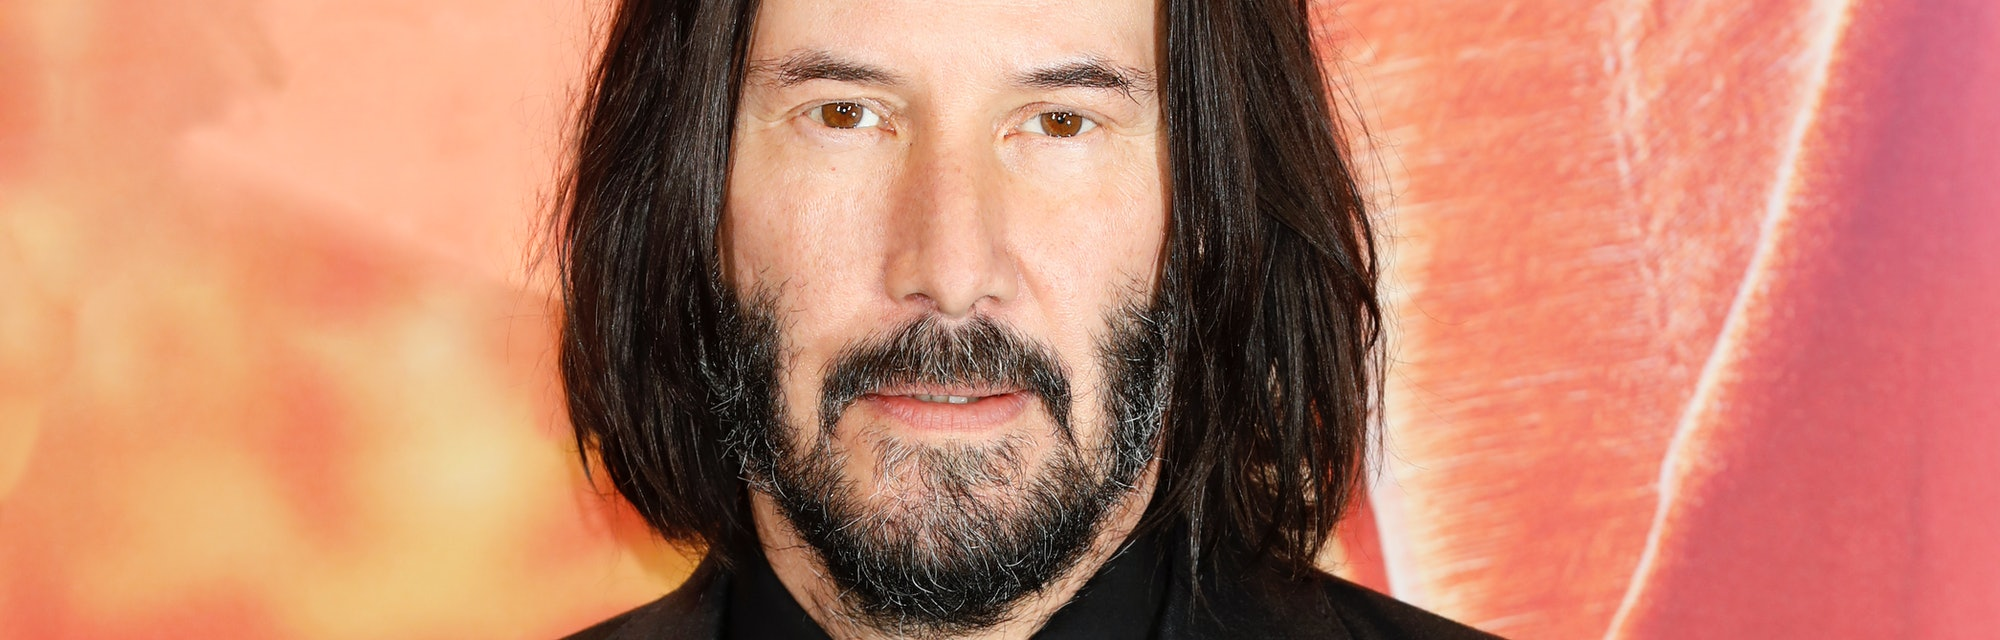 BERLIN, GERMANY - MAY 06: (EDITORS NOTE: Image has been digitally retouched) Keanu Reeves attends th...